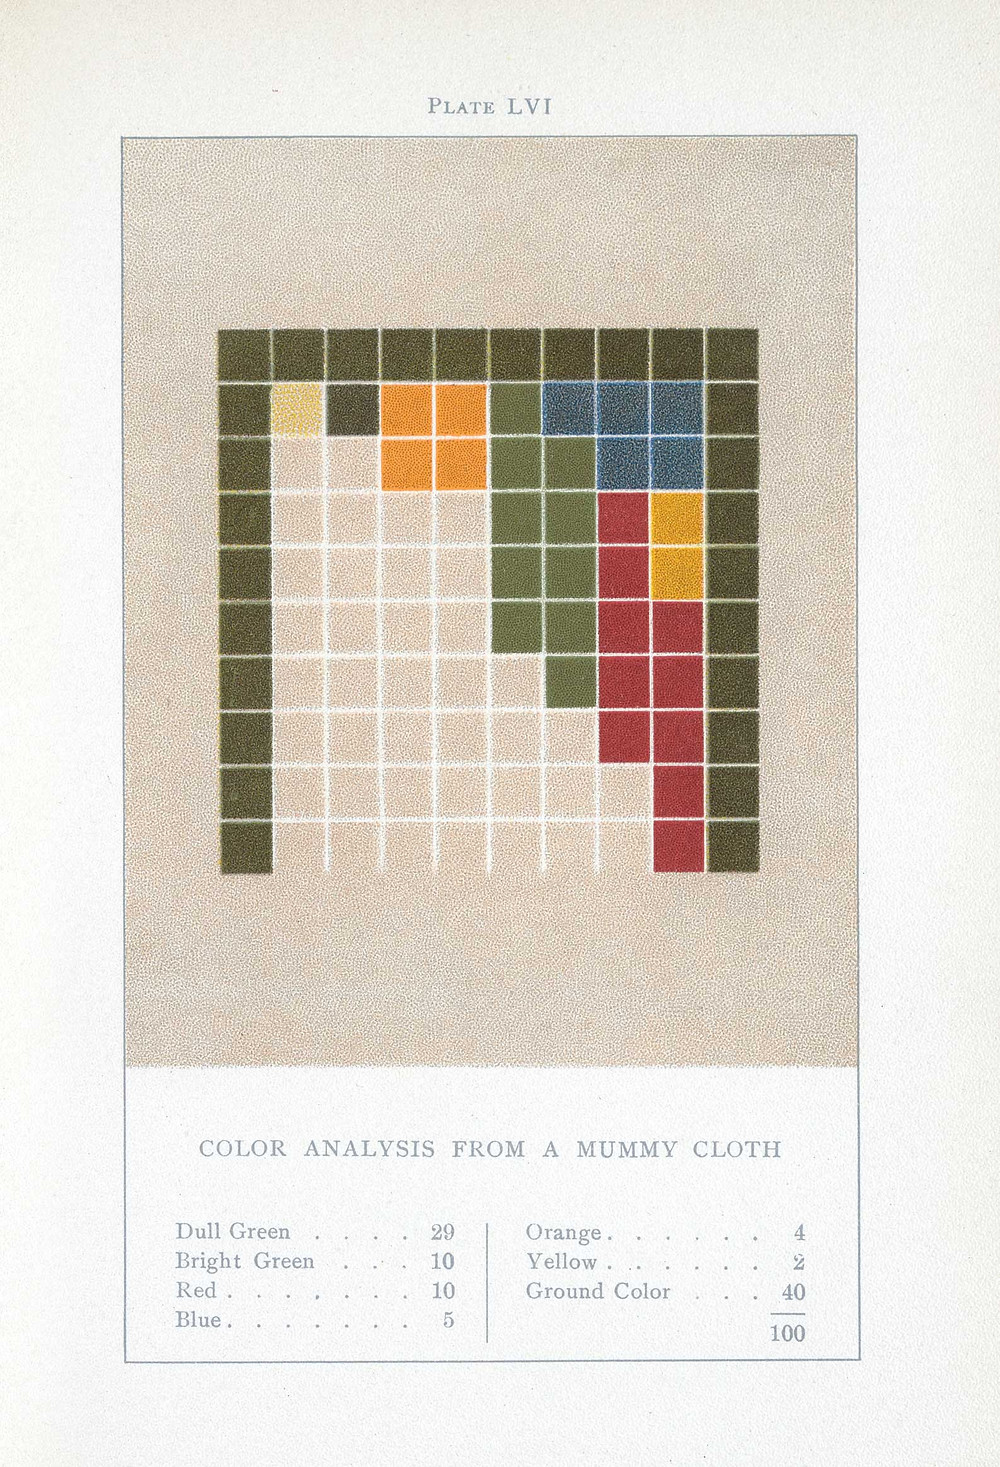 color analysis from a mummy cloth